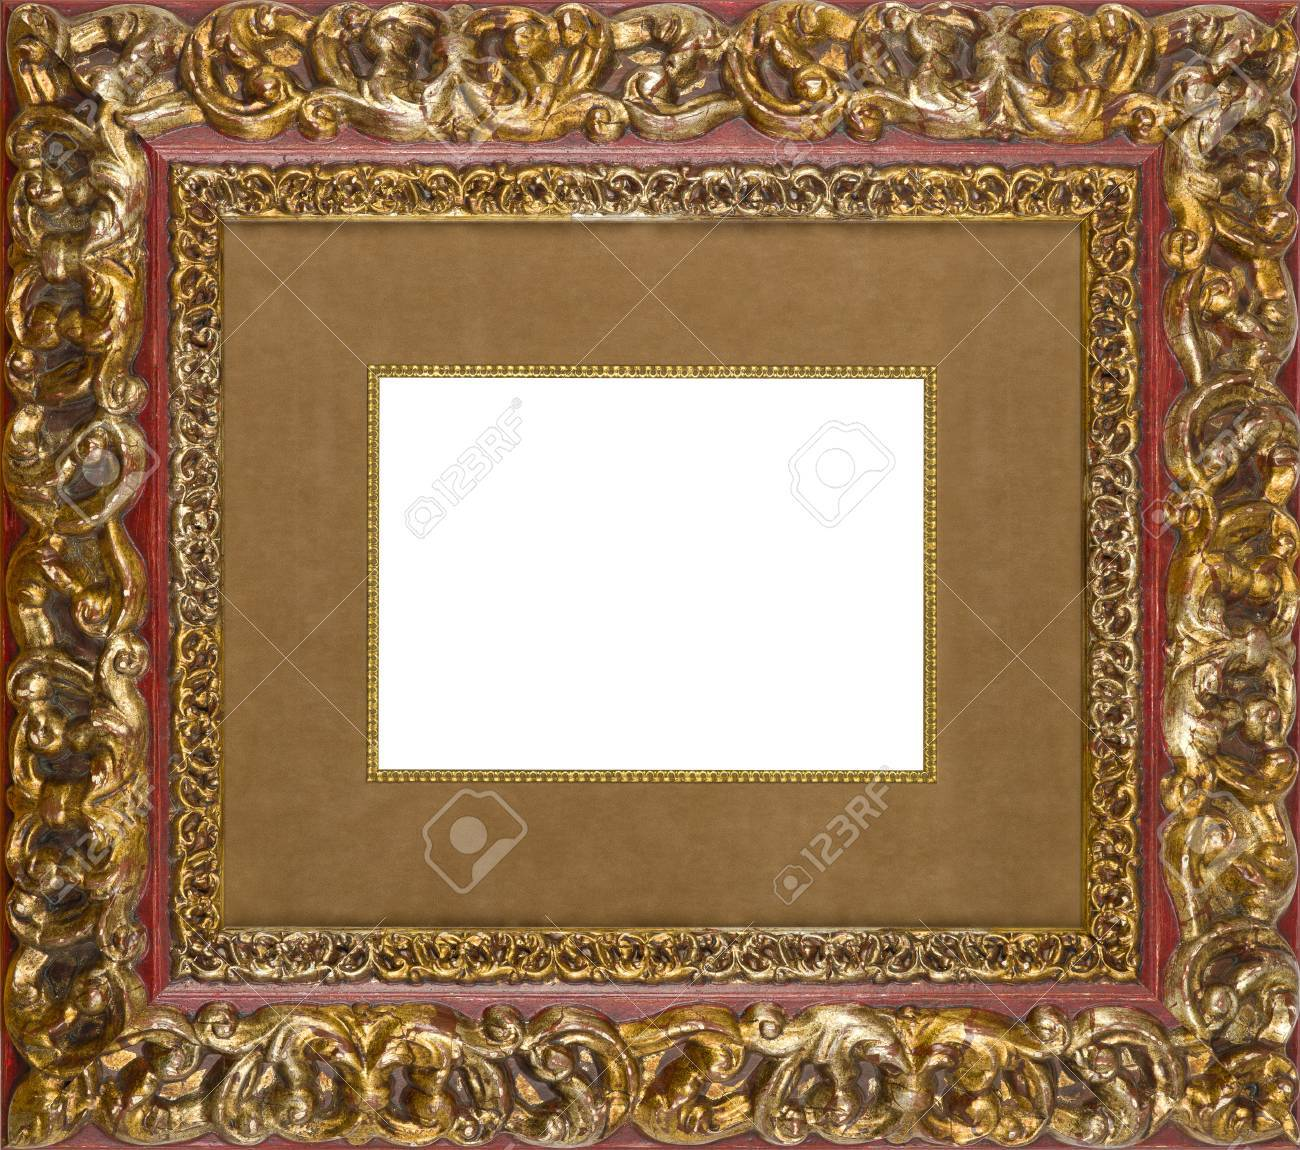 Gold art picture frame Stock Photo - 12603855